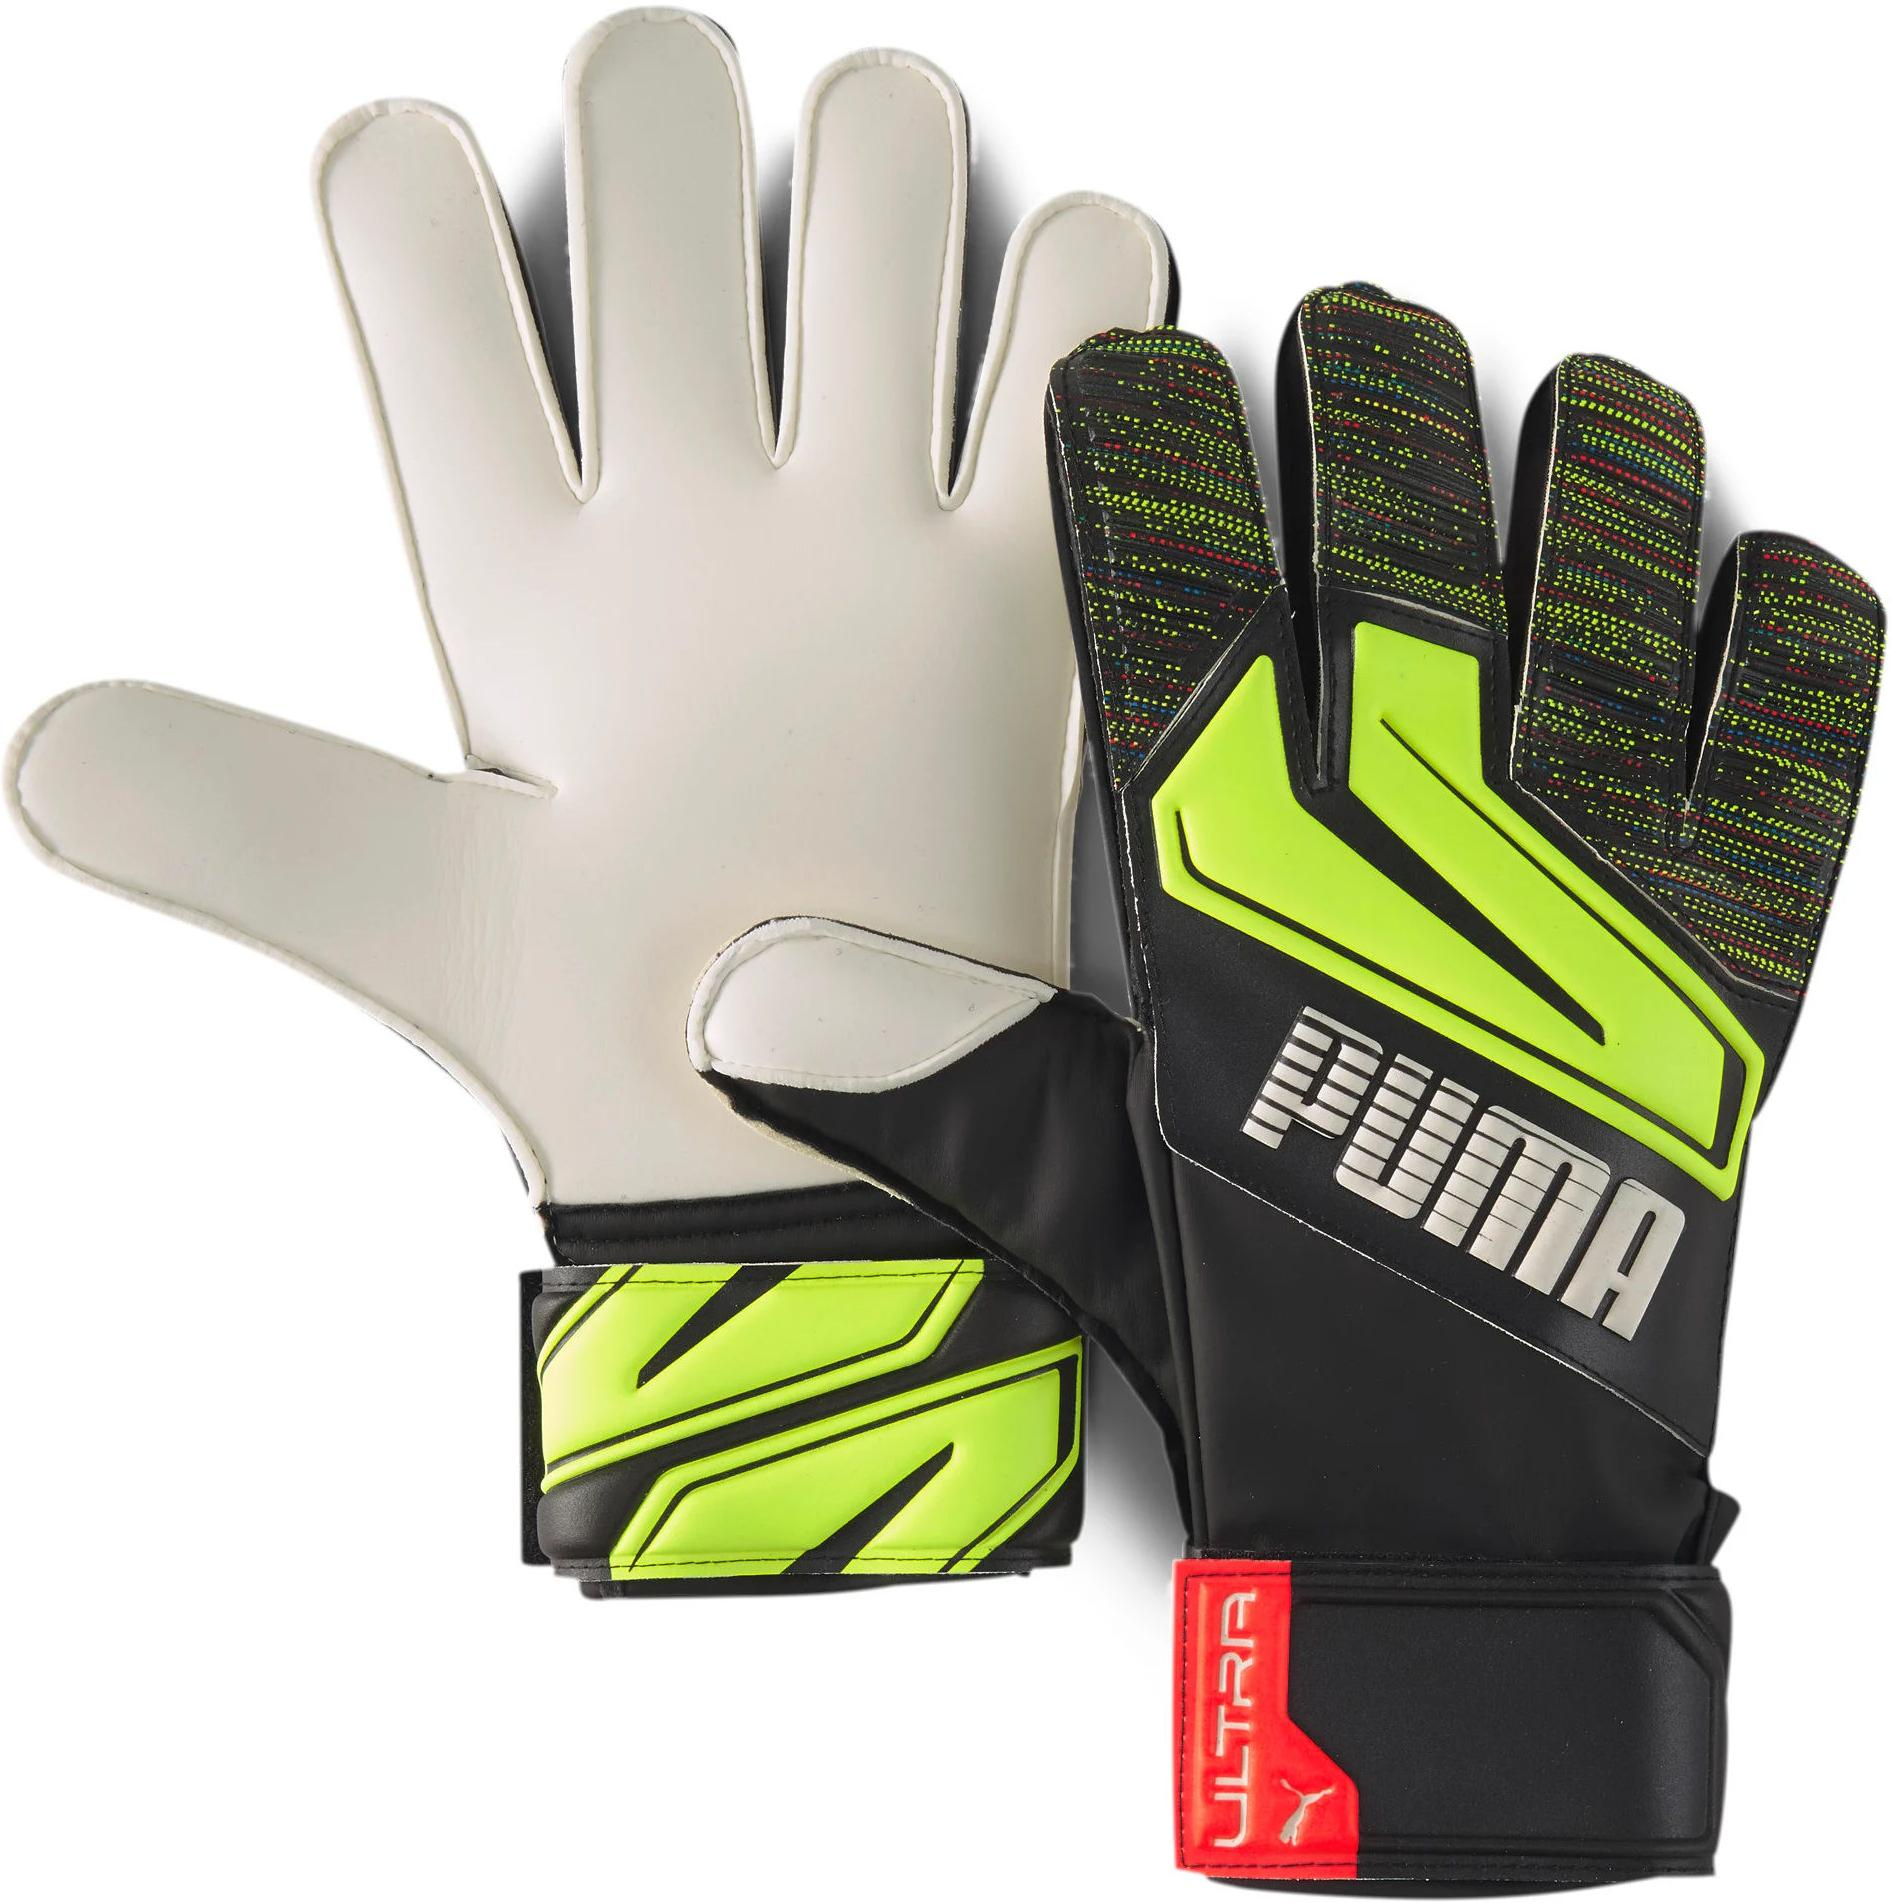 Keepers handschoenen Puma ULTRA Grip 3 RC